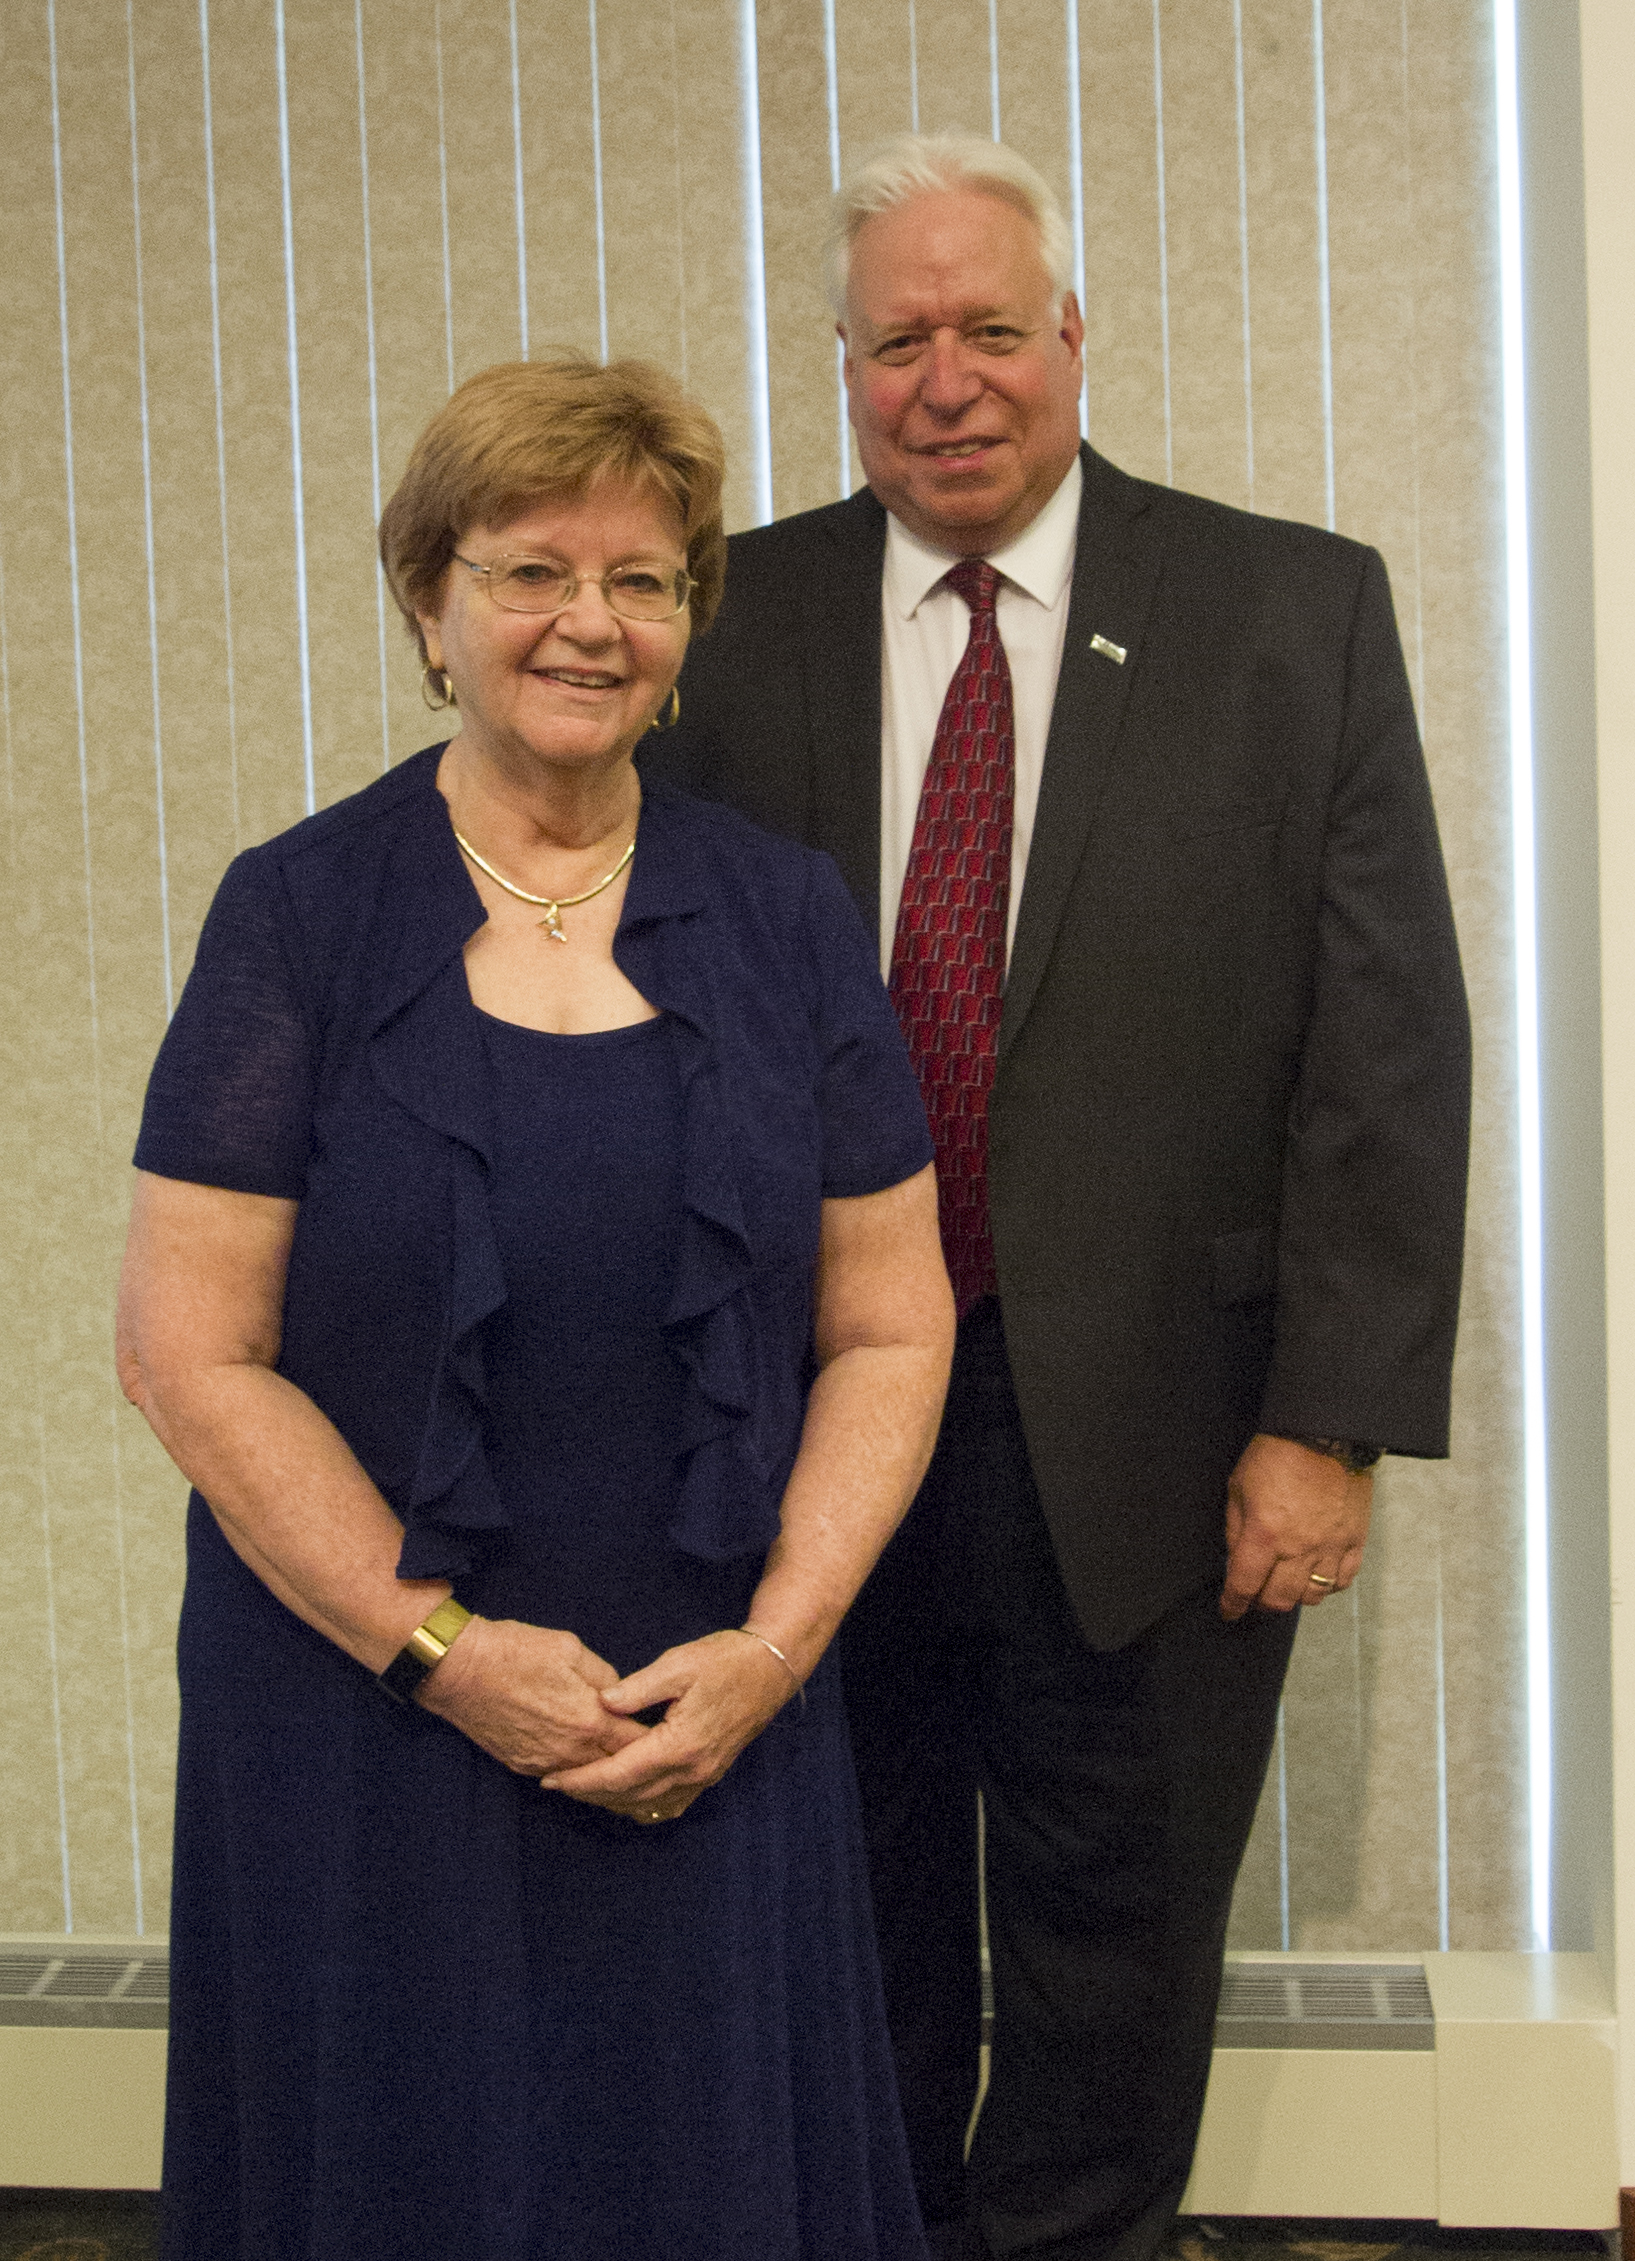 Nancy and G. Clarke Borgeson '72